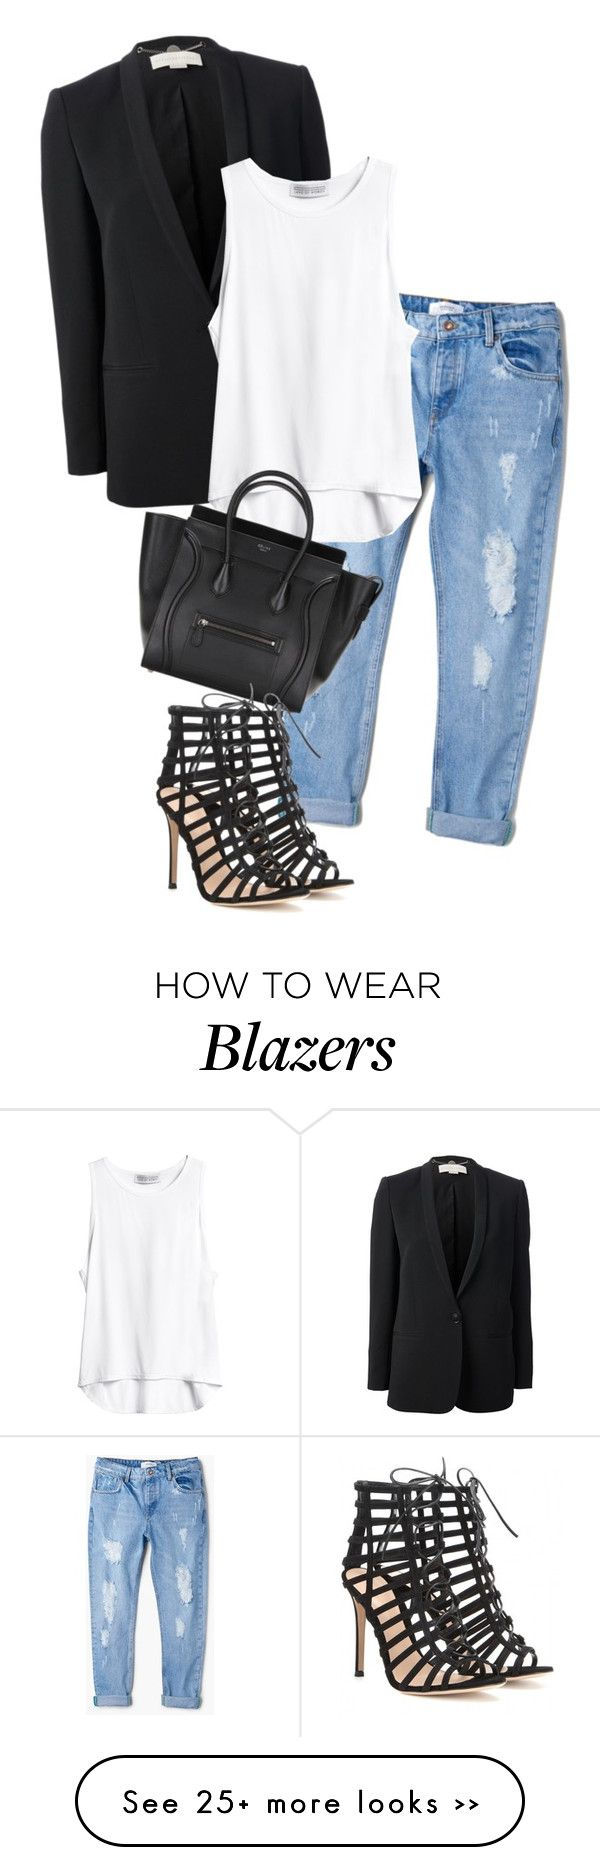 """Untitled #2530"" by carmelaromio on Polyvore"